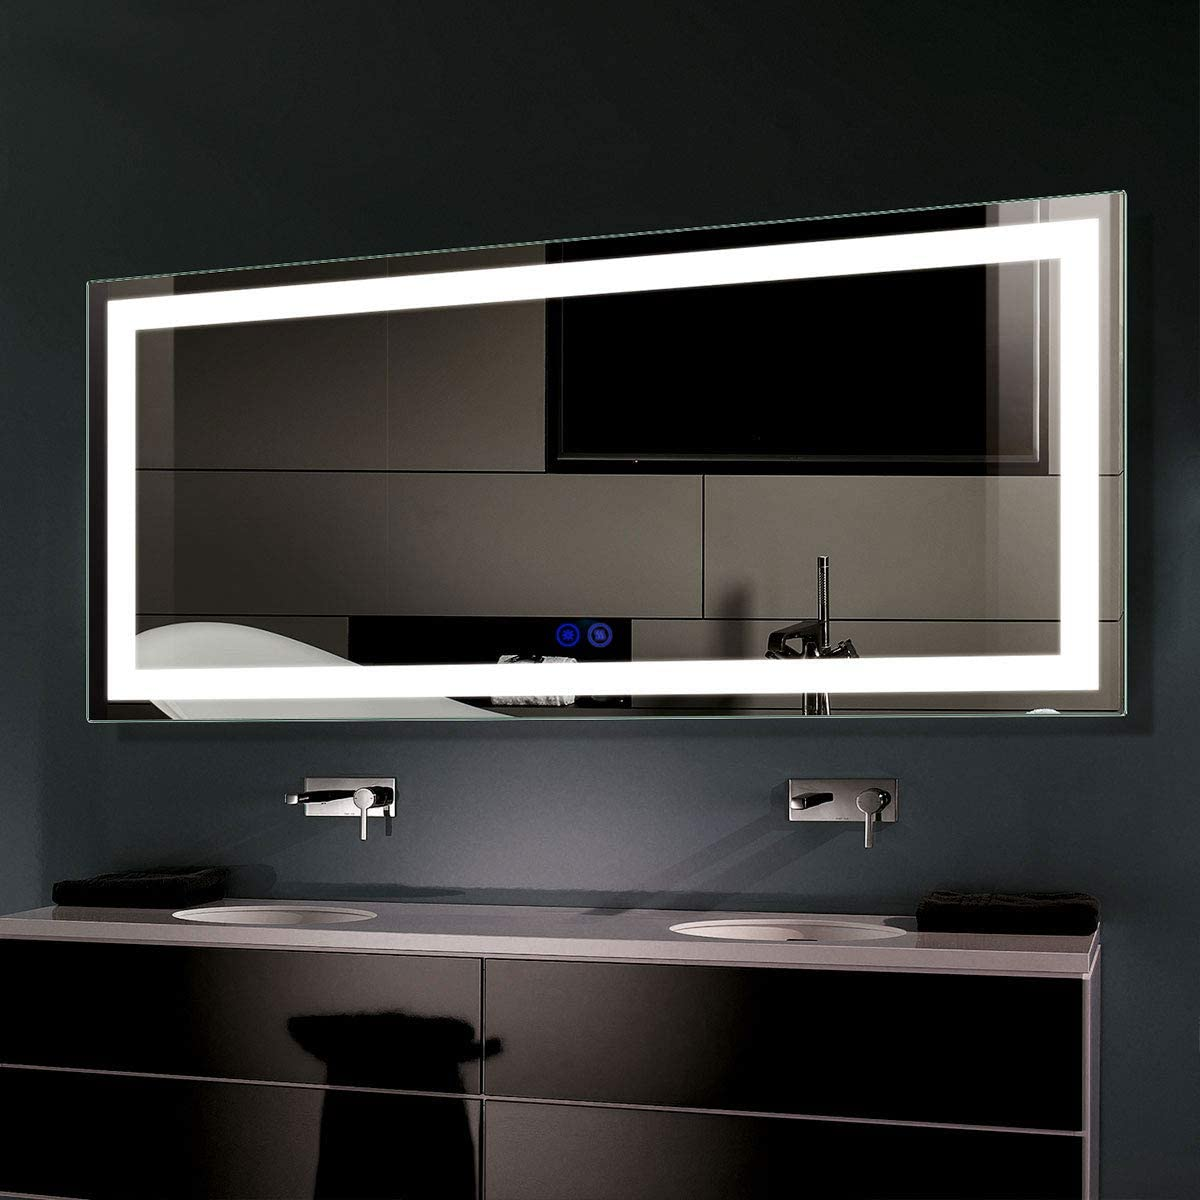 Dimmable Tucson Mall LED Bathroom Mirror Antifog Super sale Wall Vanit Lighted Mounted